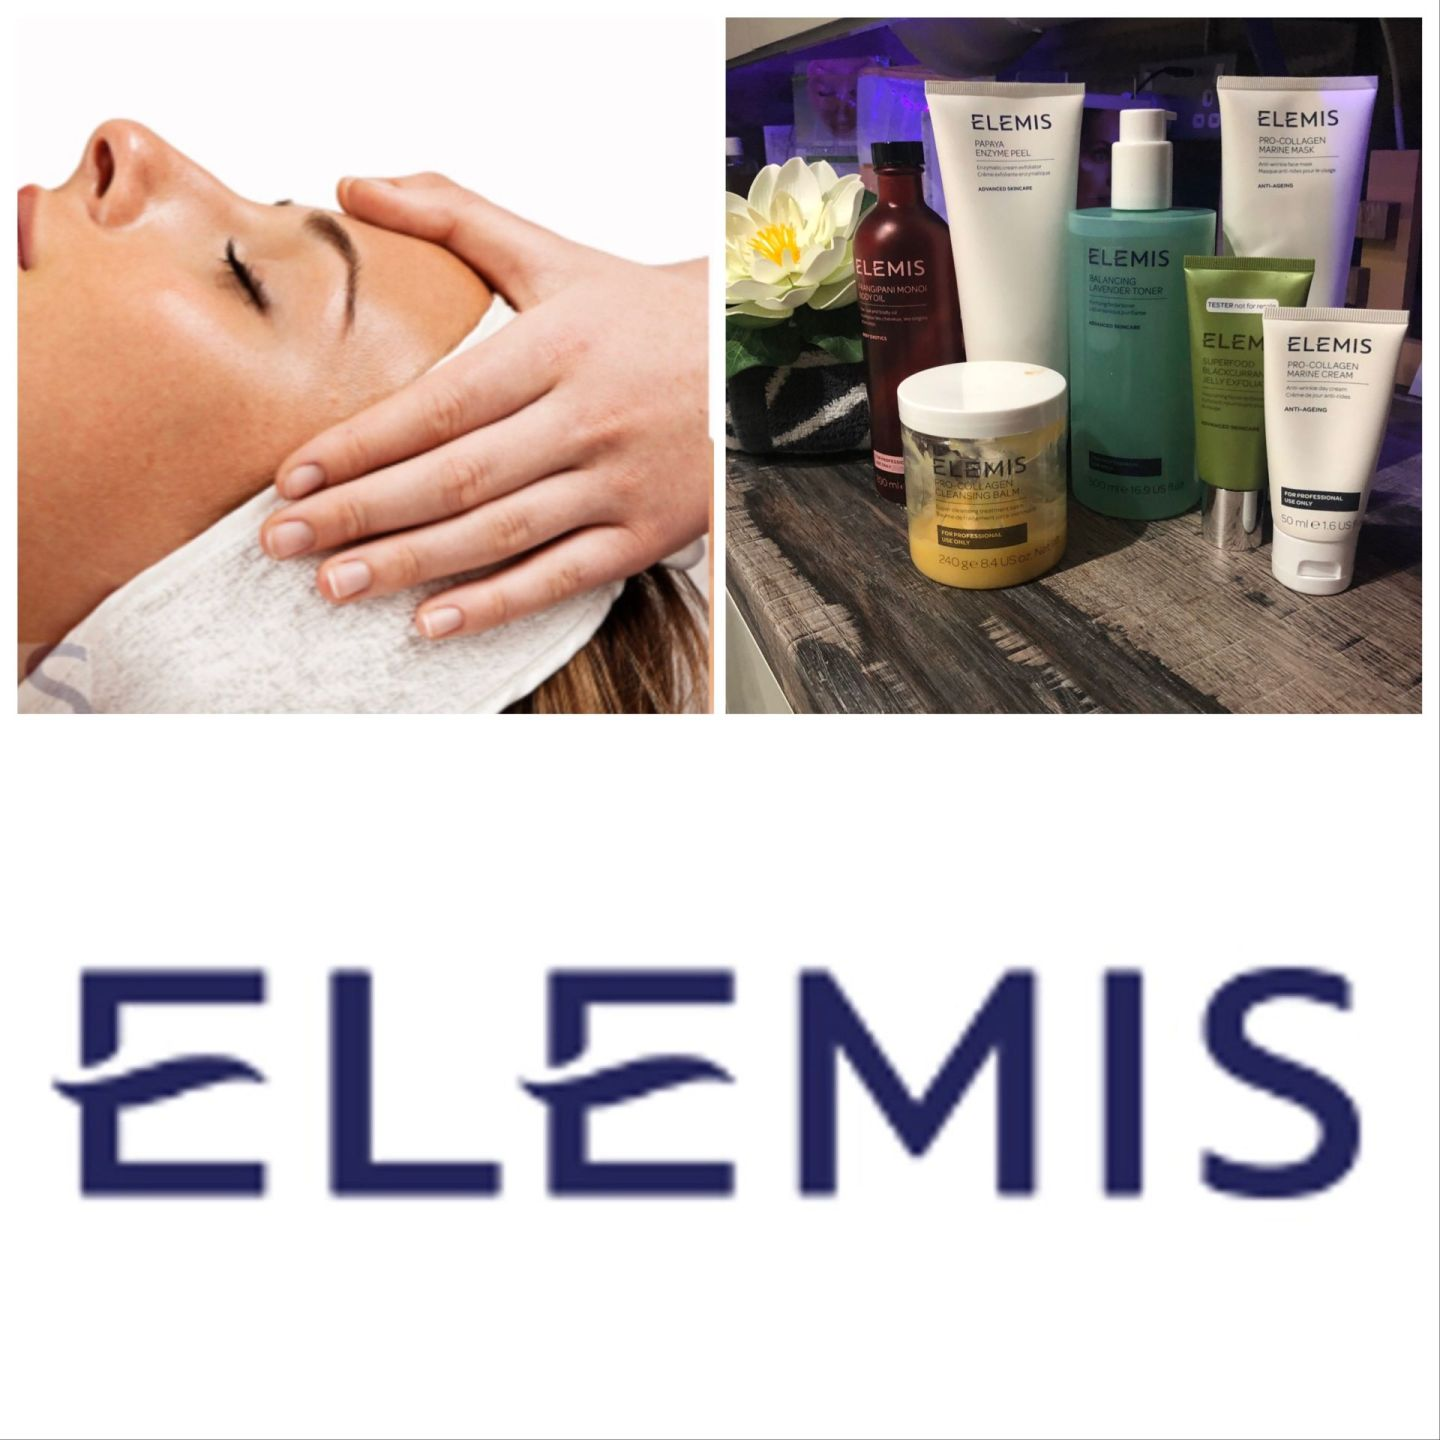 Elemis Facial Treatments - Review